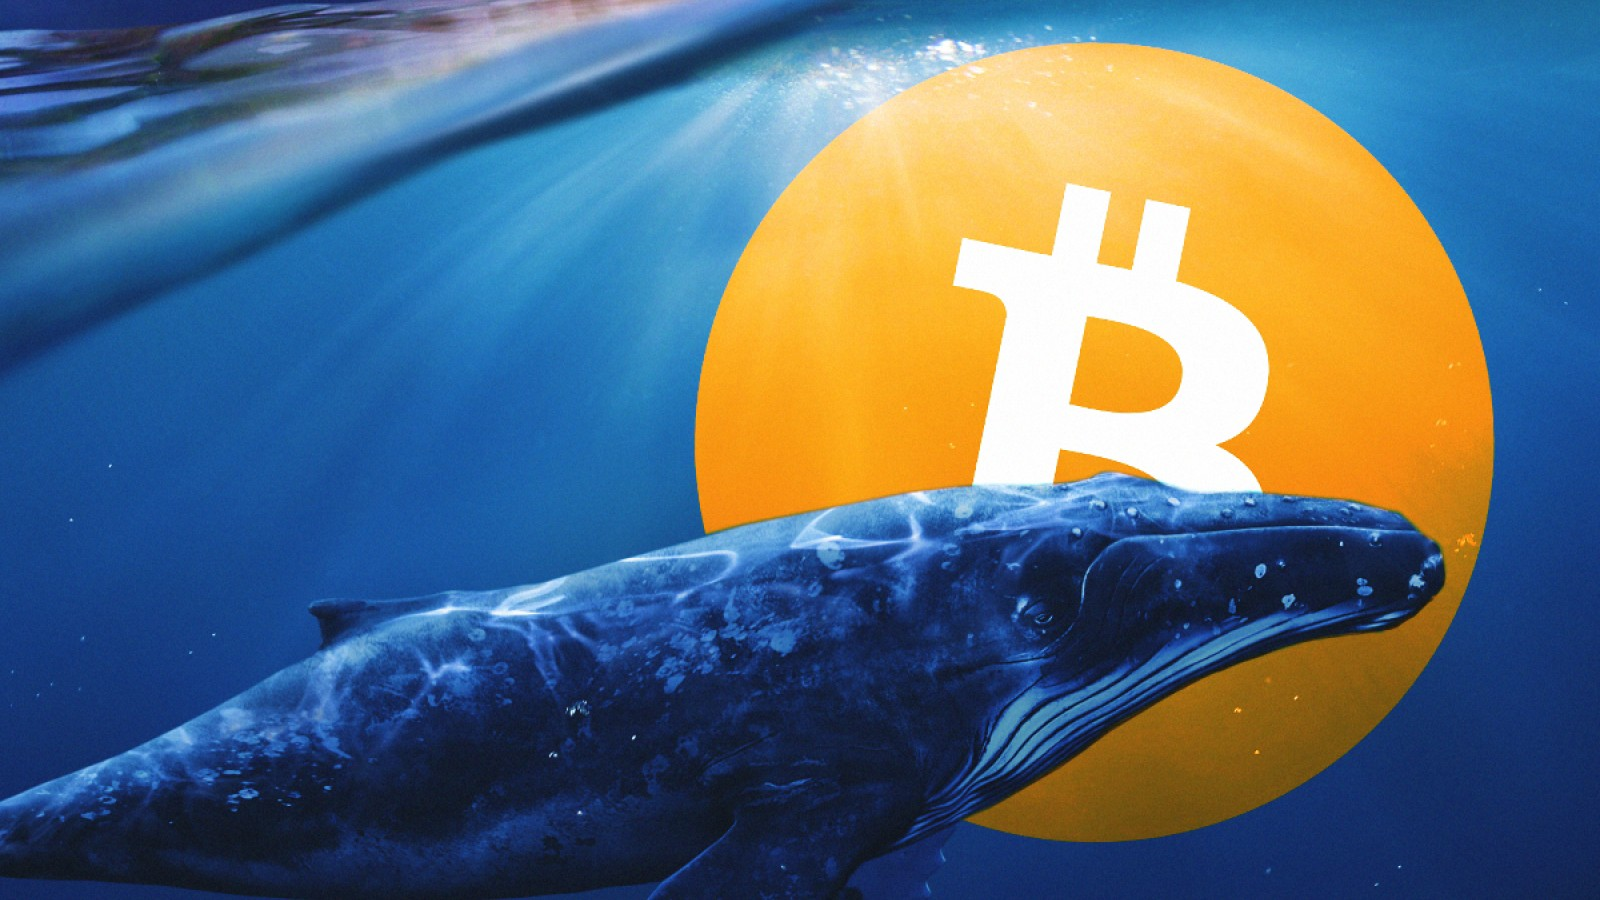 This could indicate the next profitable levels for Bitcoin